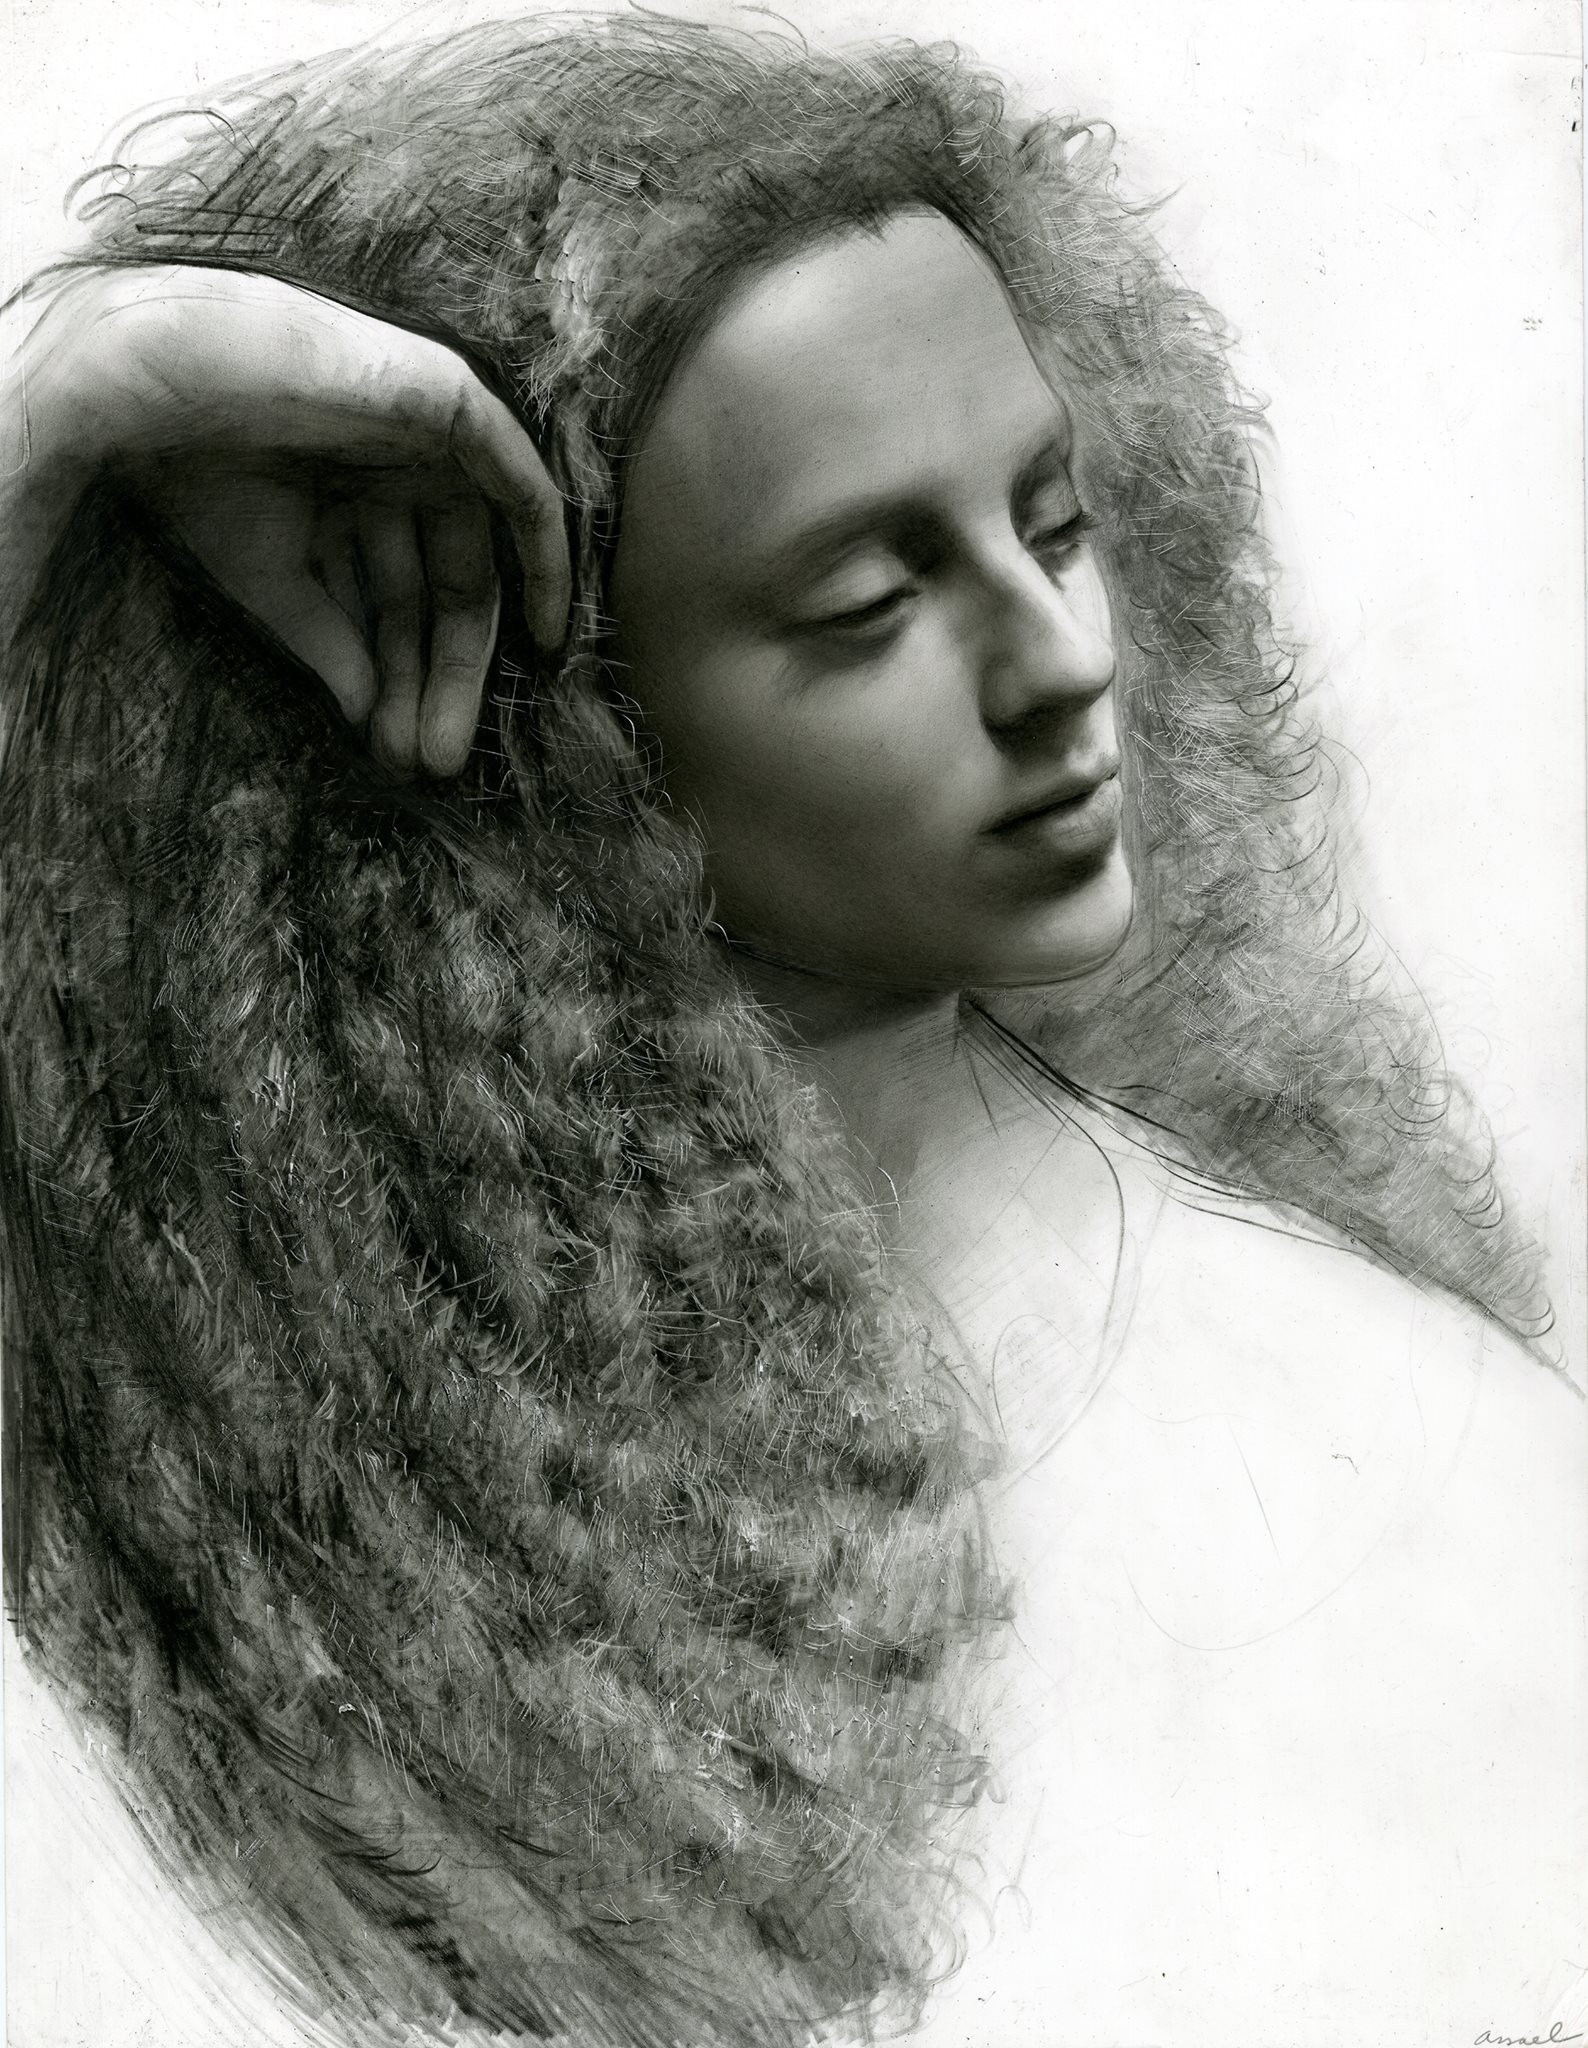 Steven Assael, Graphite on Paper